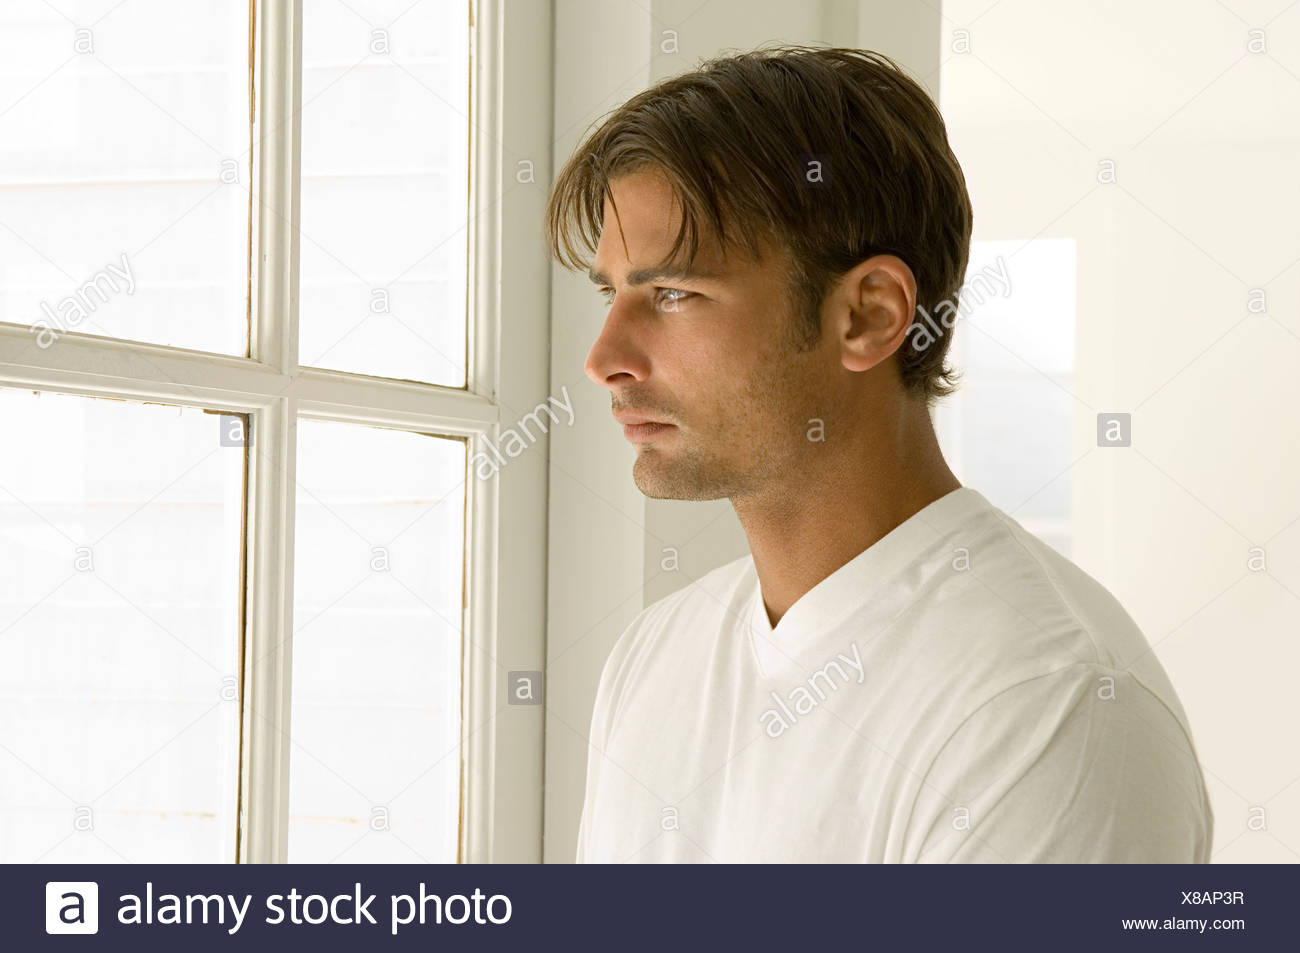 Man looking out of window - Stock Image